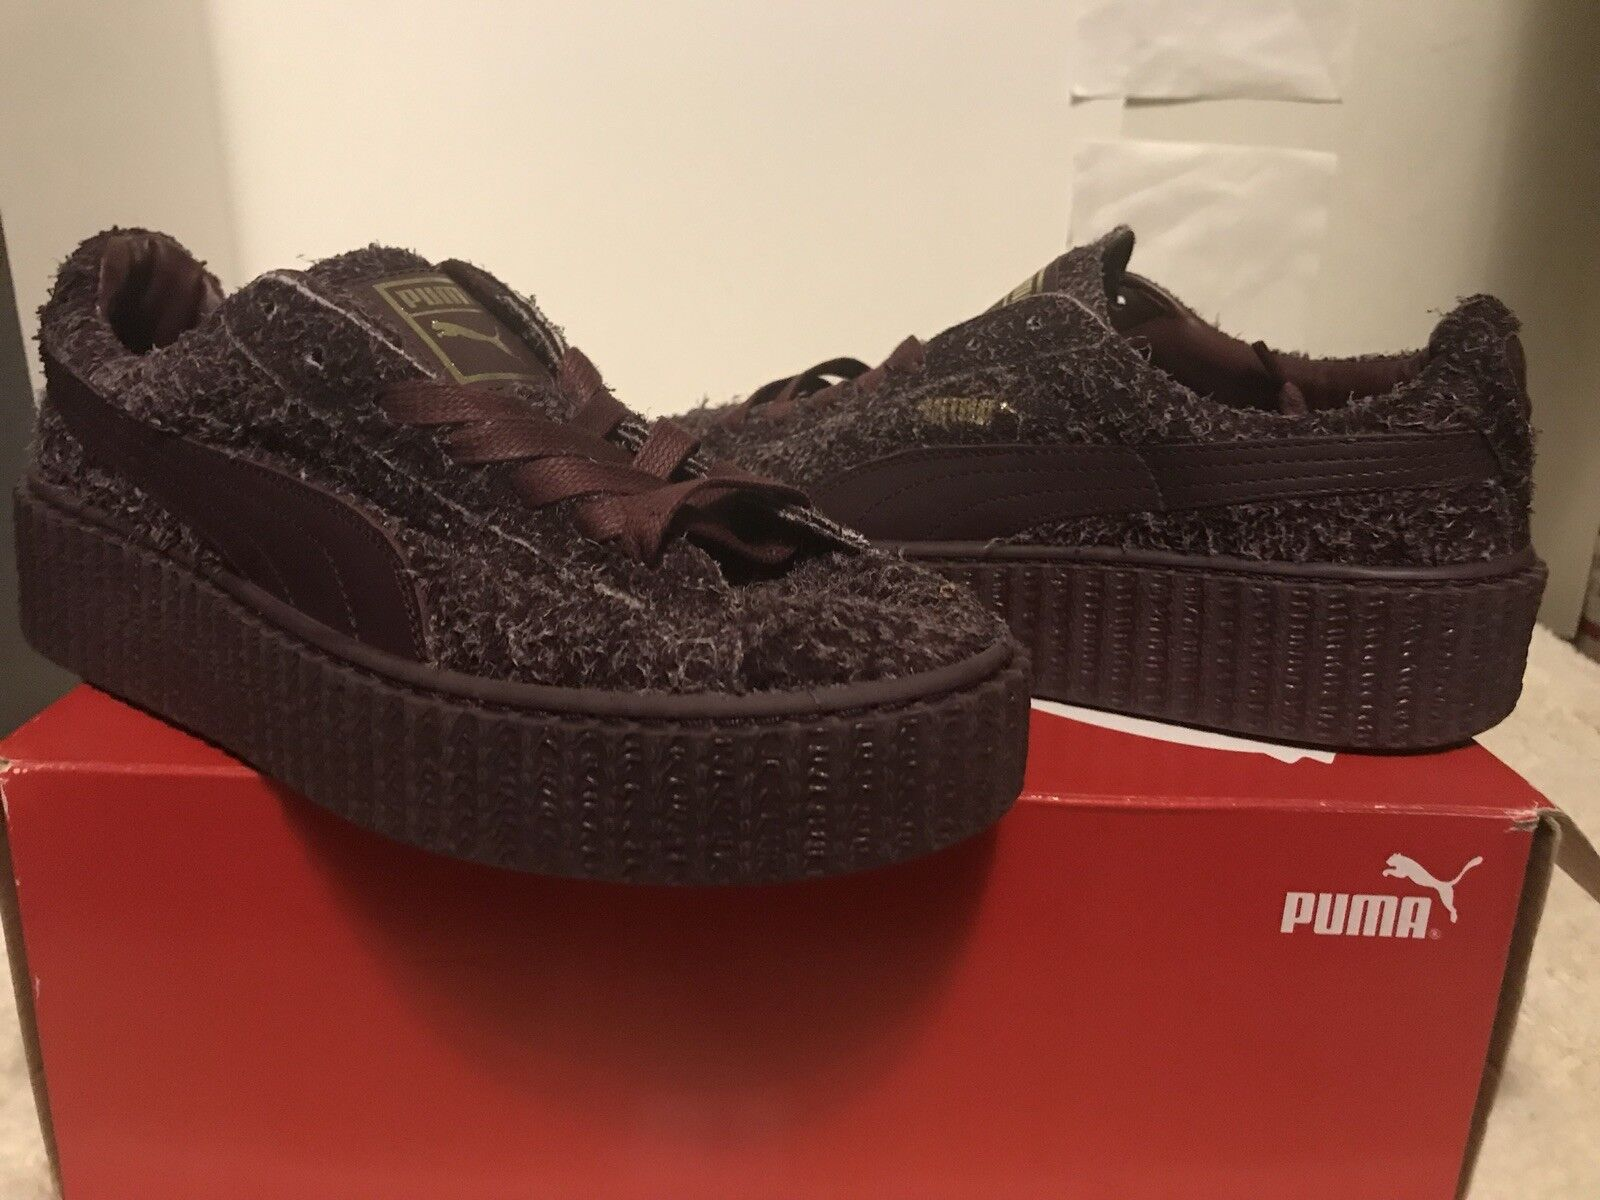 PUMA WOMENS CREEPERS   SIZE 7 WINE